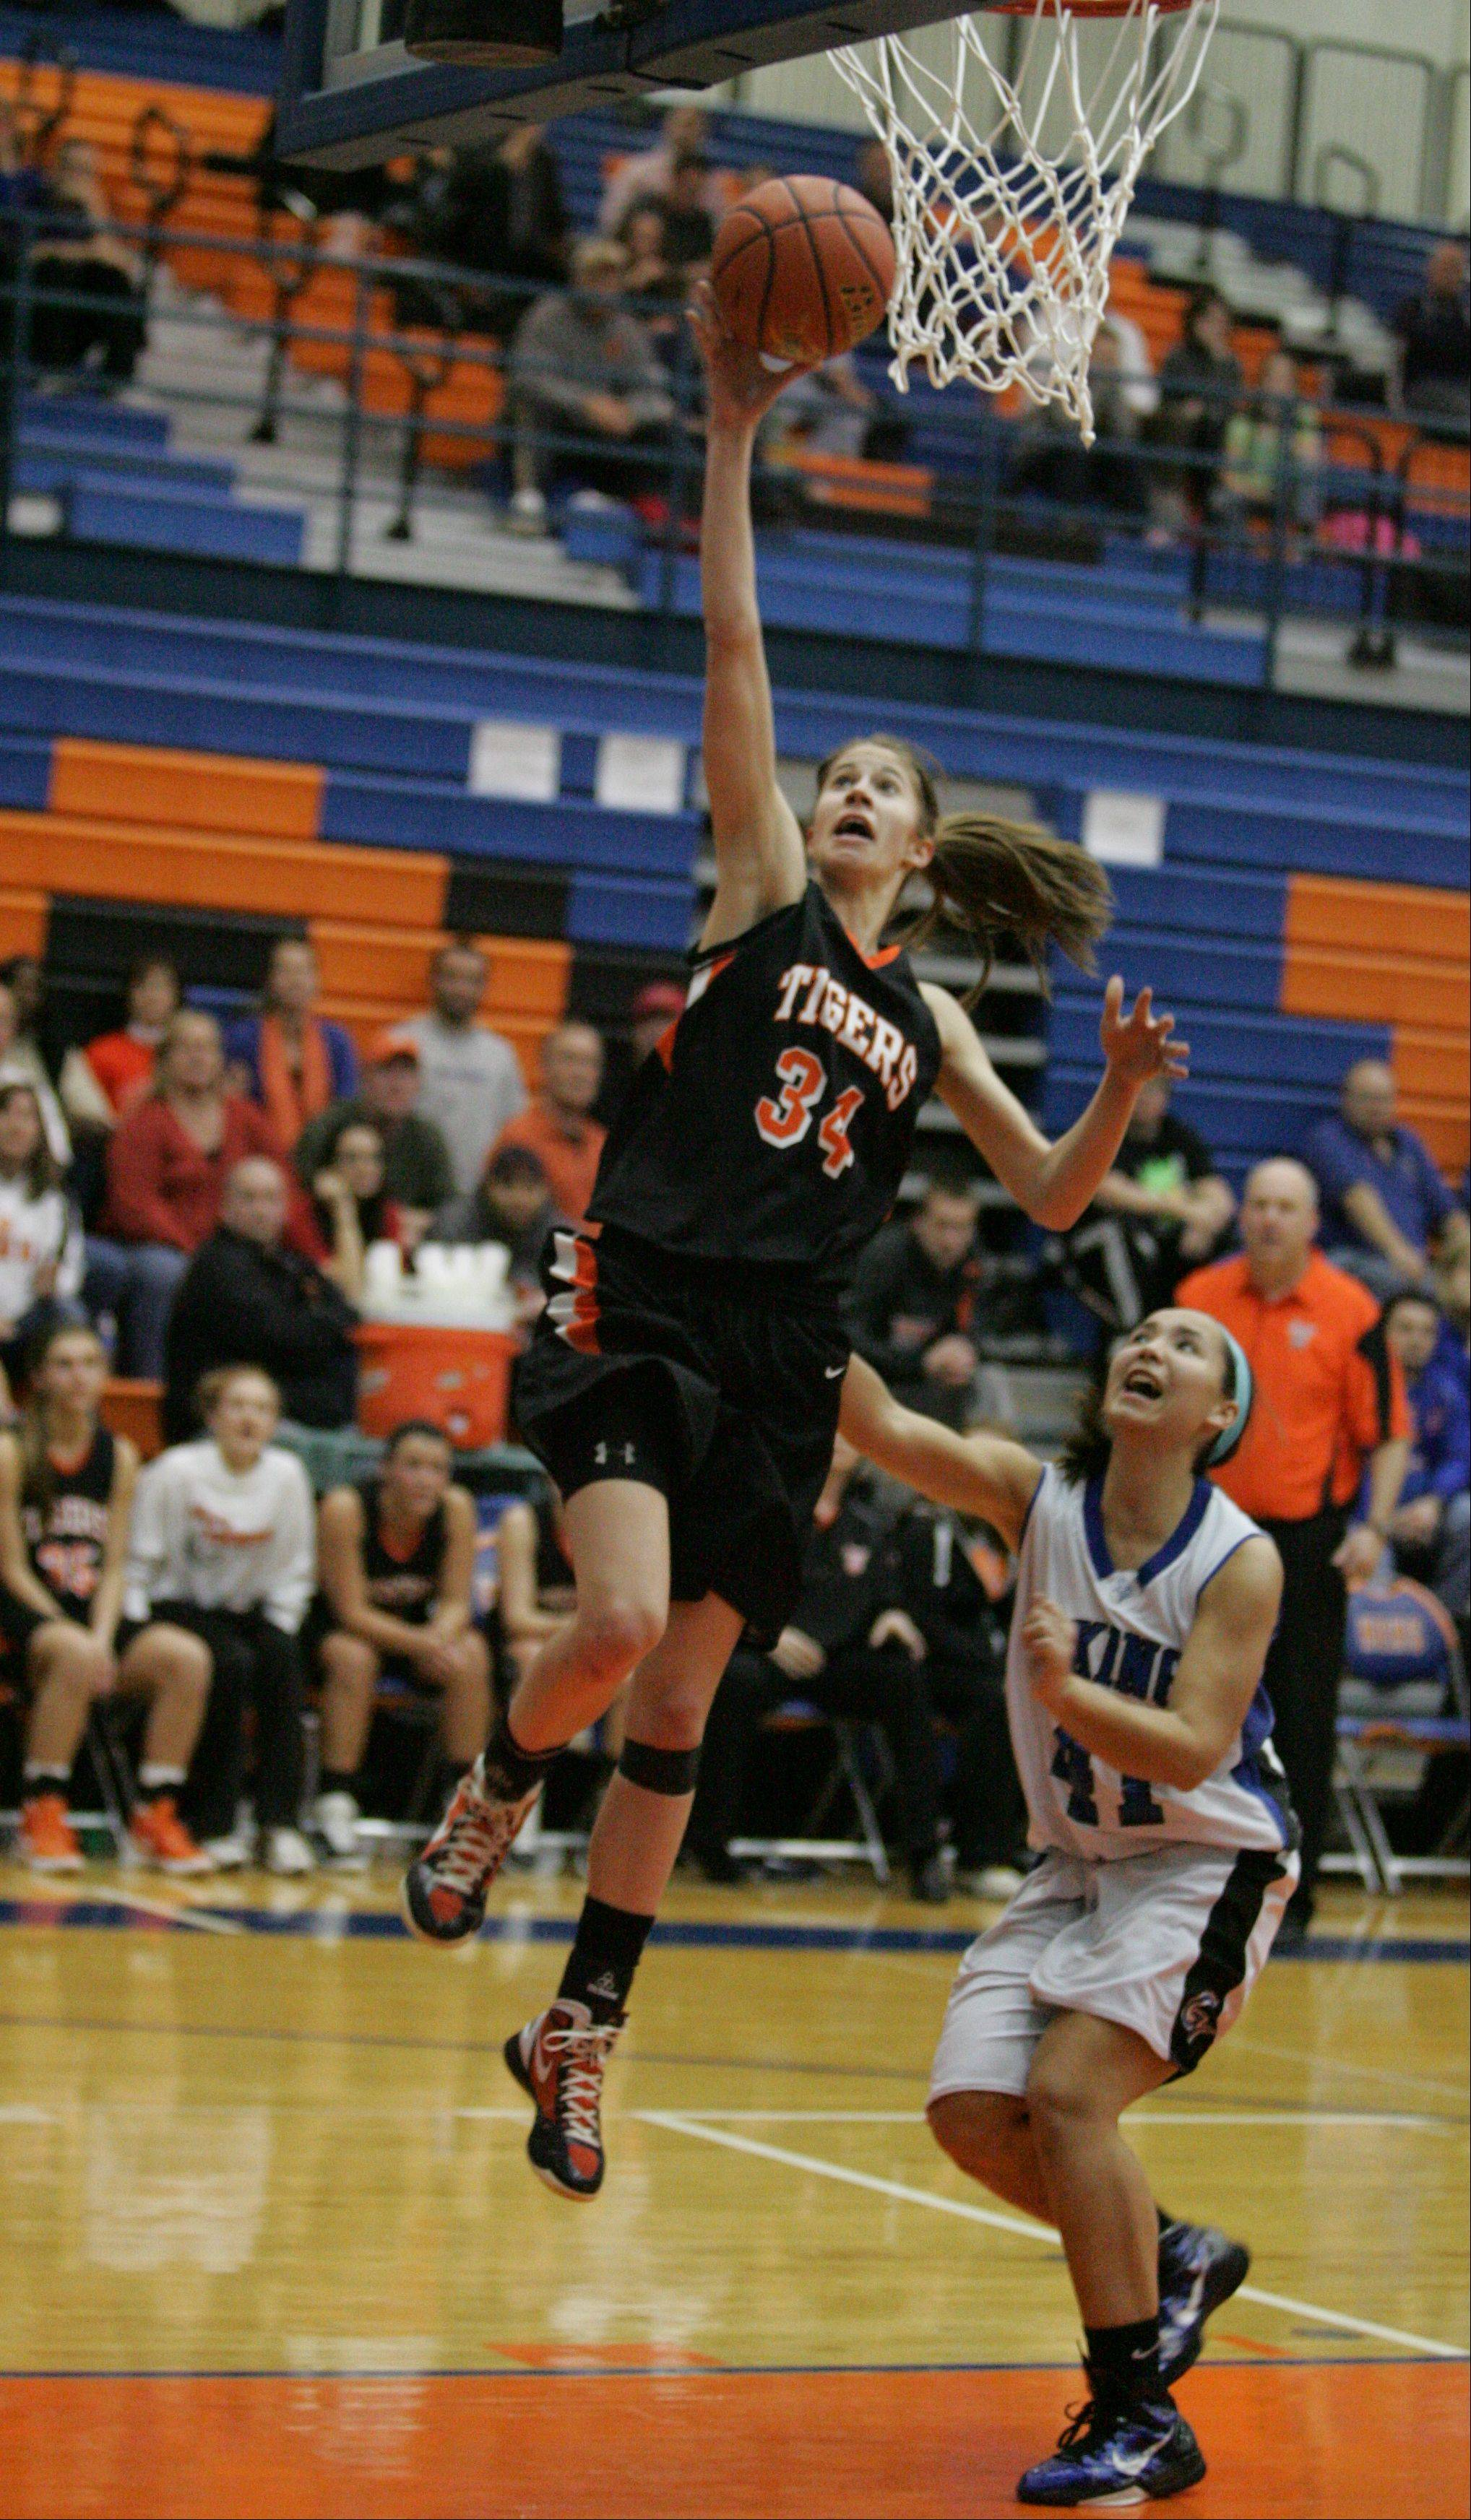 Geneva vs. Wheaton Warrenville South Monday night in Class 4A girls basketball sectlional semifinals in Hoffman Estates.